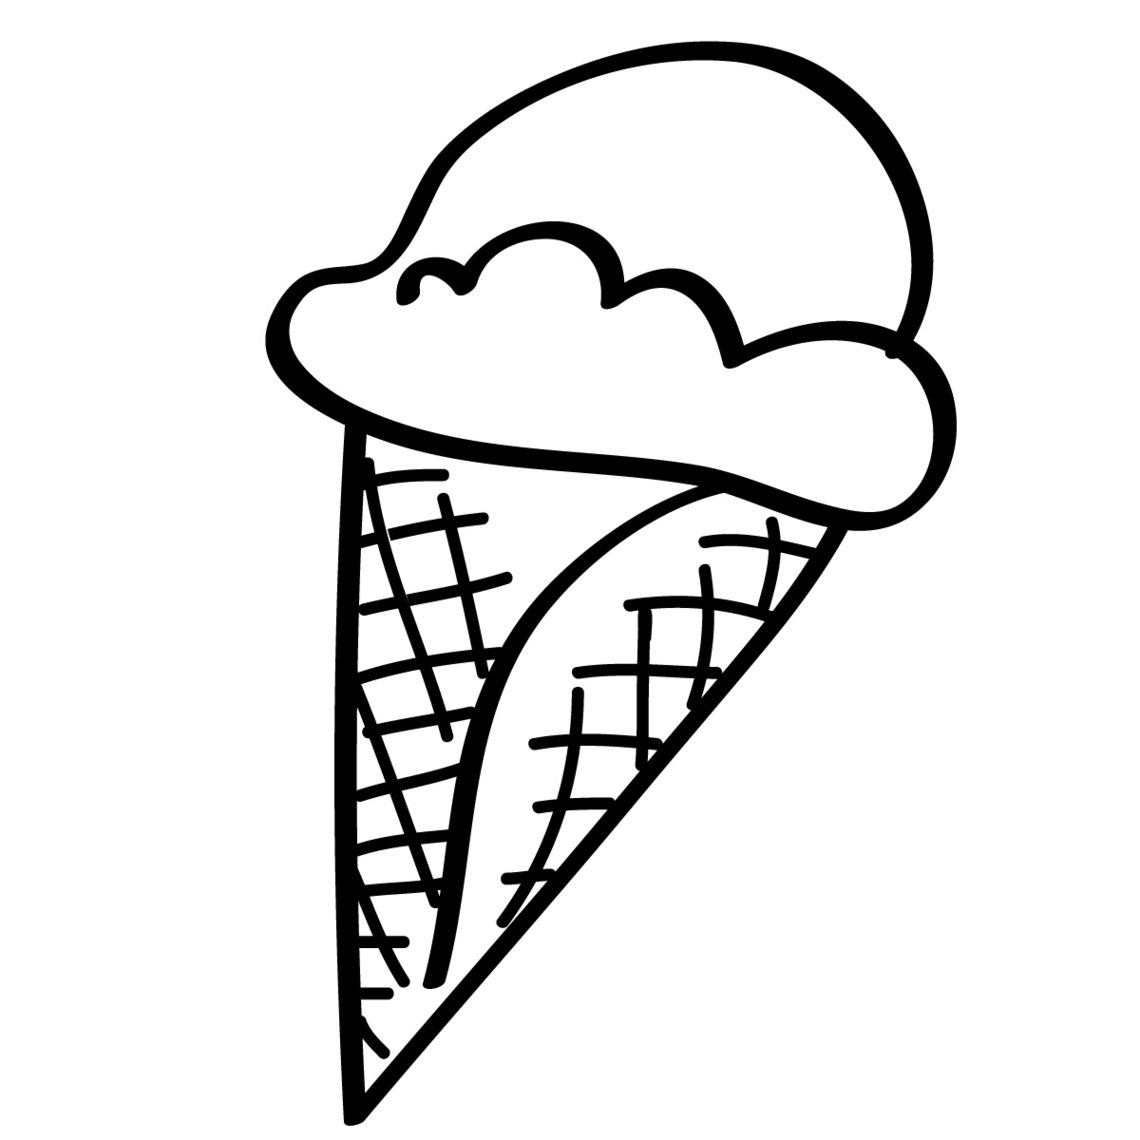 ice cream coloring pages 2 ice cream coloring pages 5 ice cream